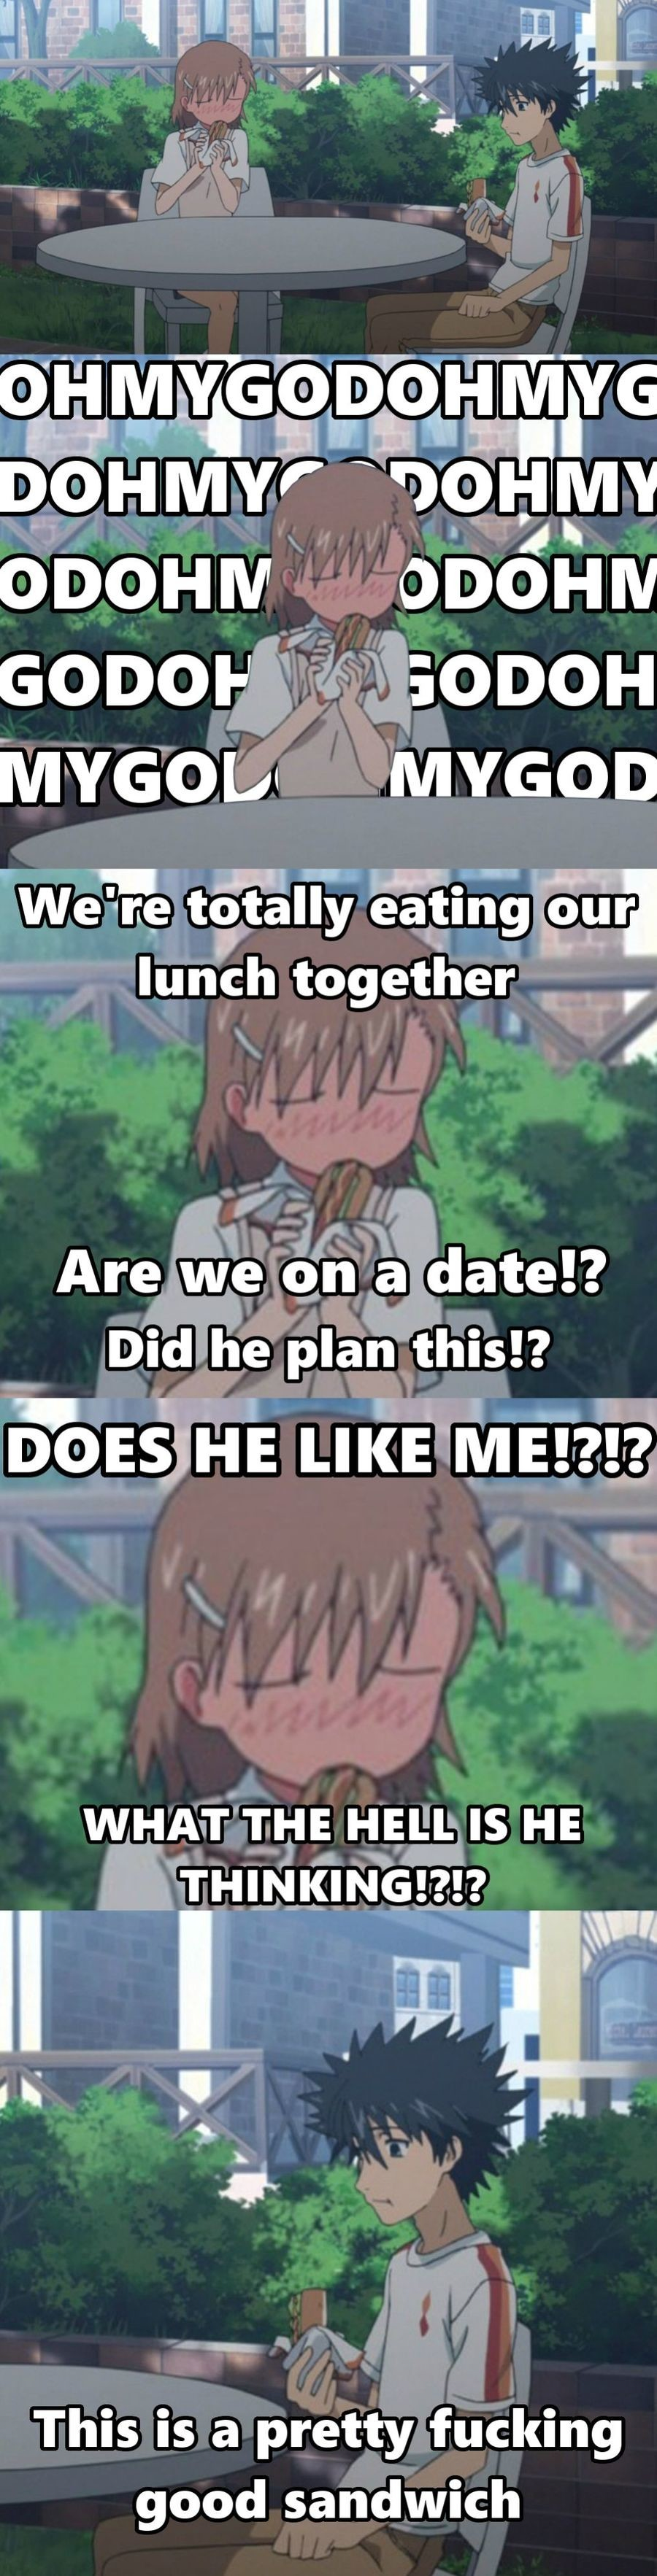 Admin on a date. .. Must be pretty good considering that's a hotdog.